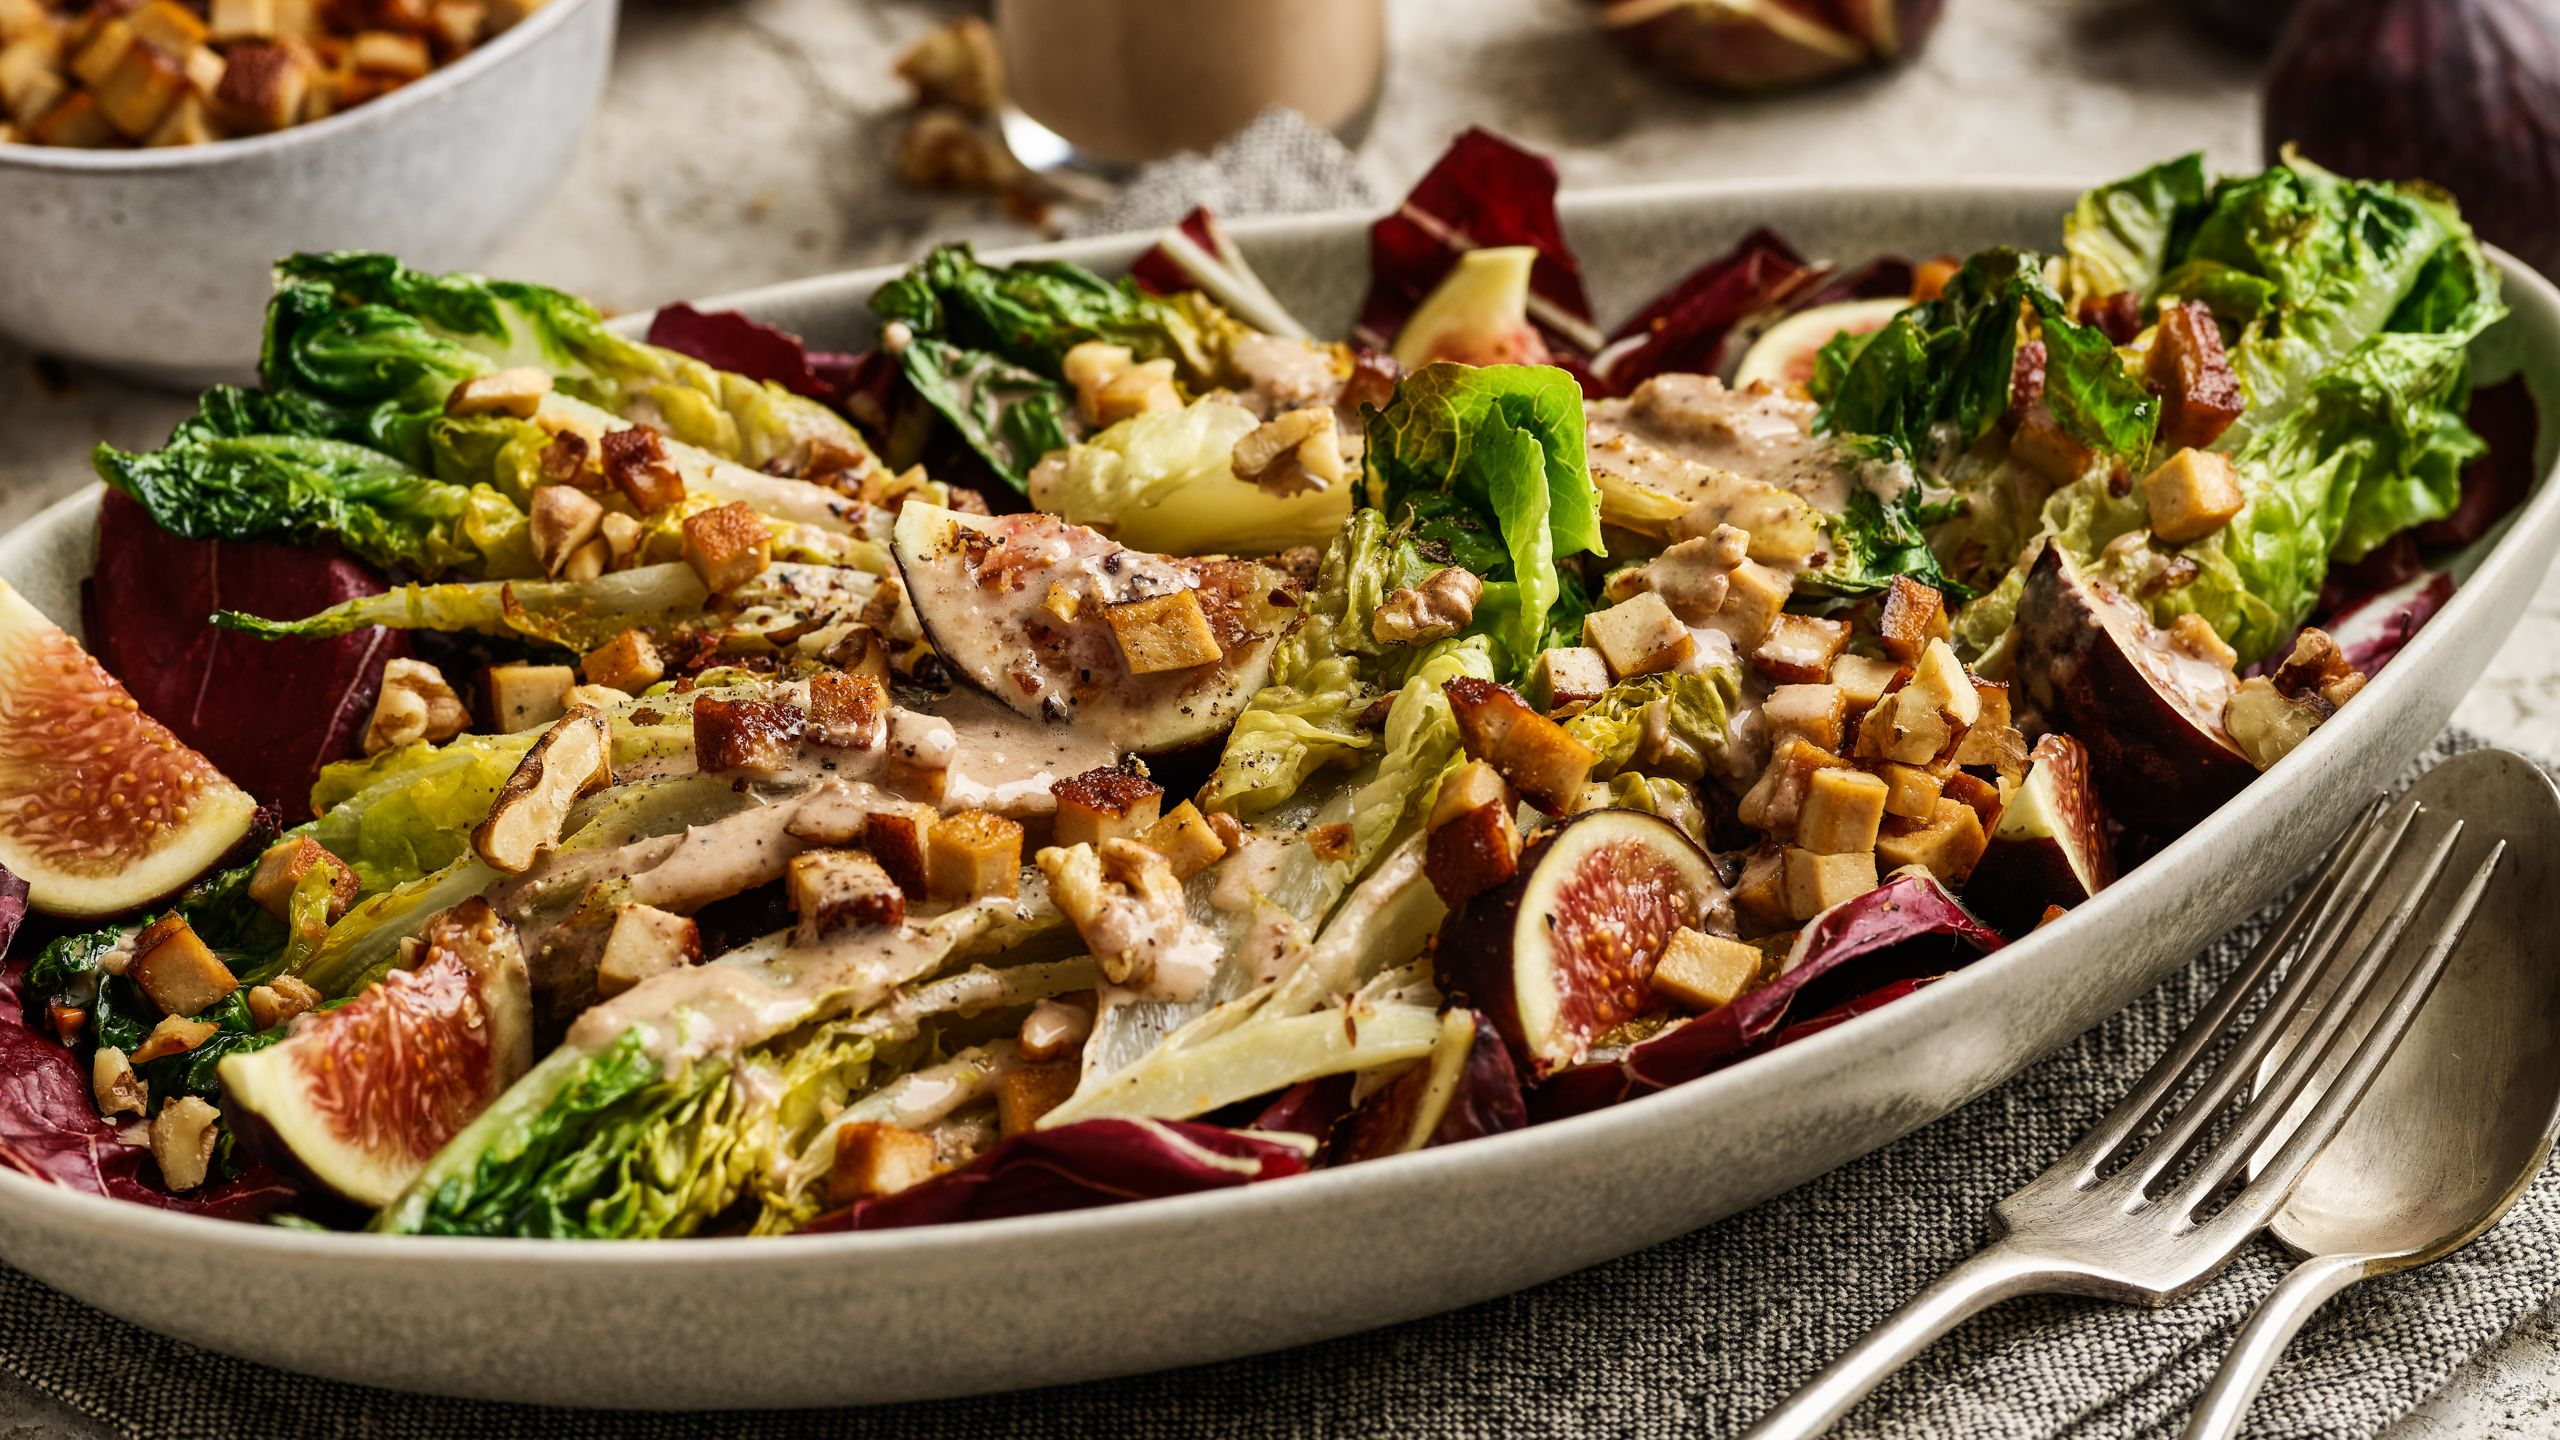 Herbstsalat an Walnuss-Miso-Dressing